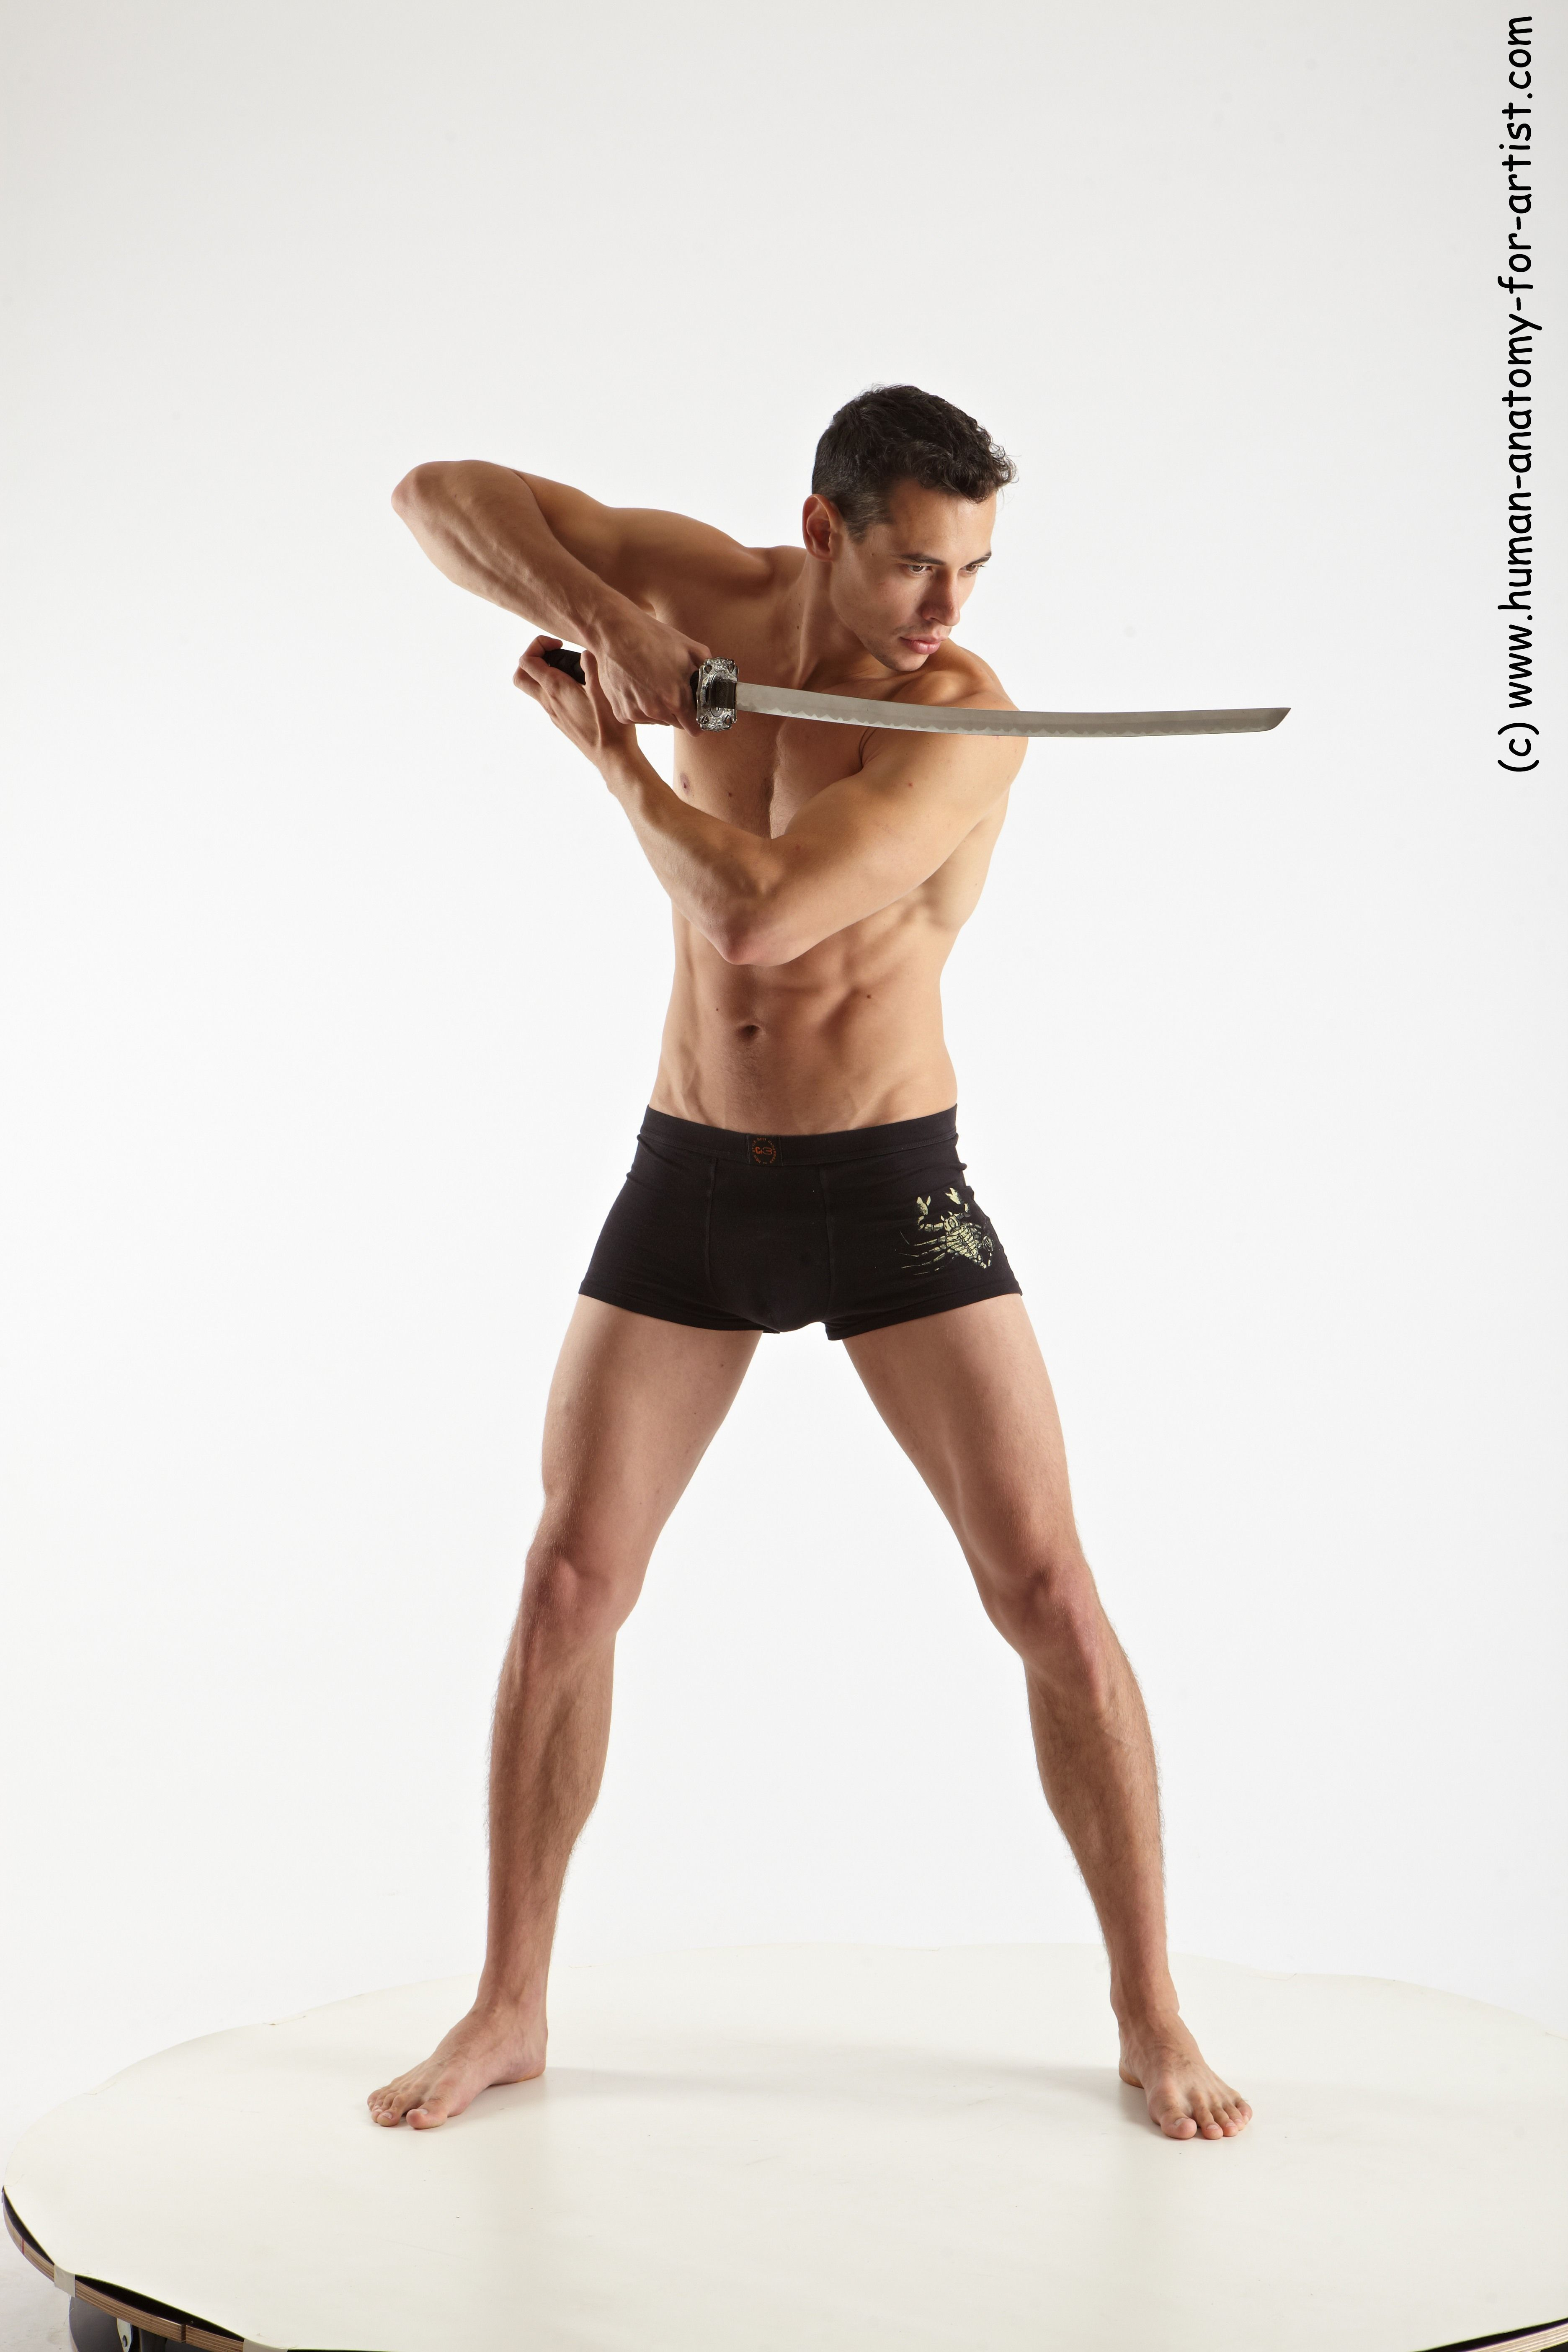 Photo Of Underwear Fighting With Sword Man White Athletic Short